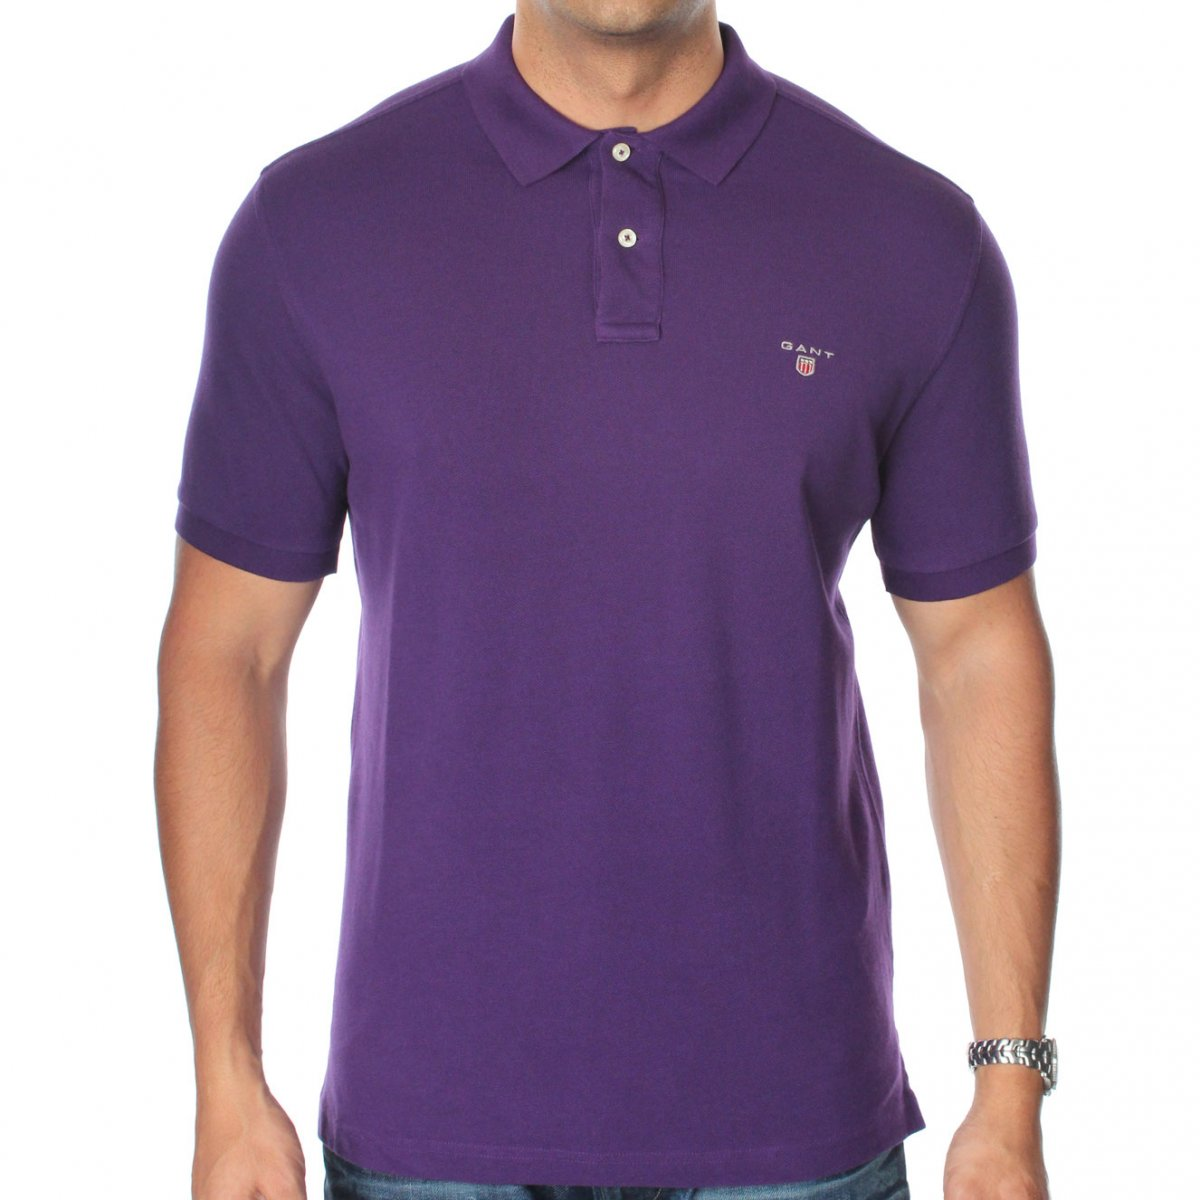 Gant solid polo t shirt various colours sizes for Best website to sell shirts